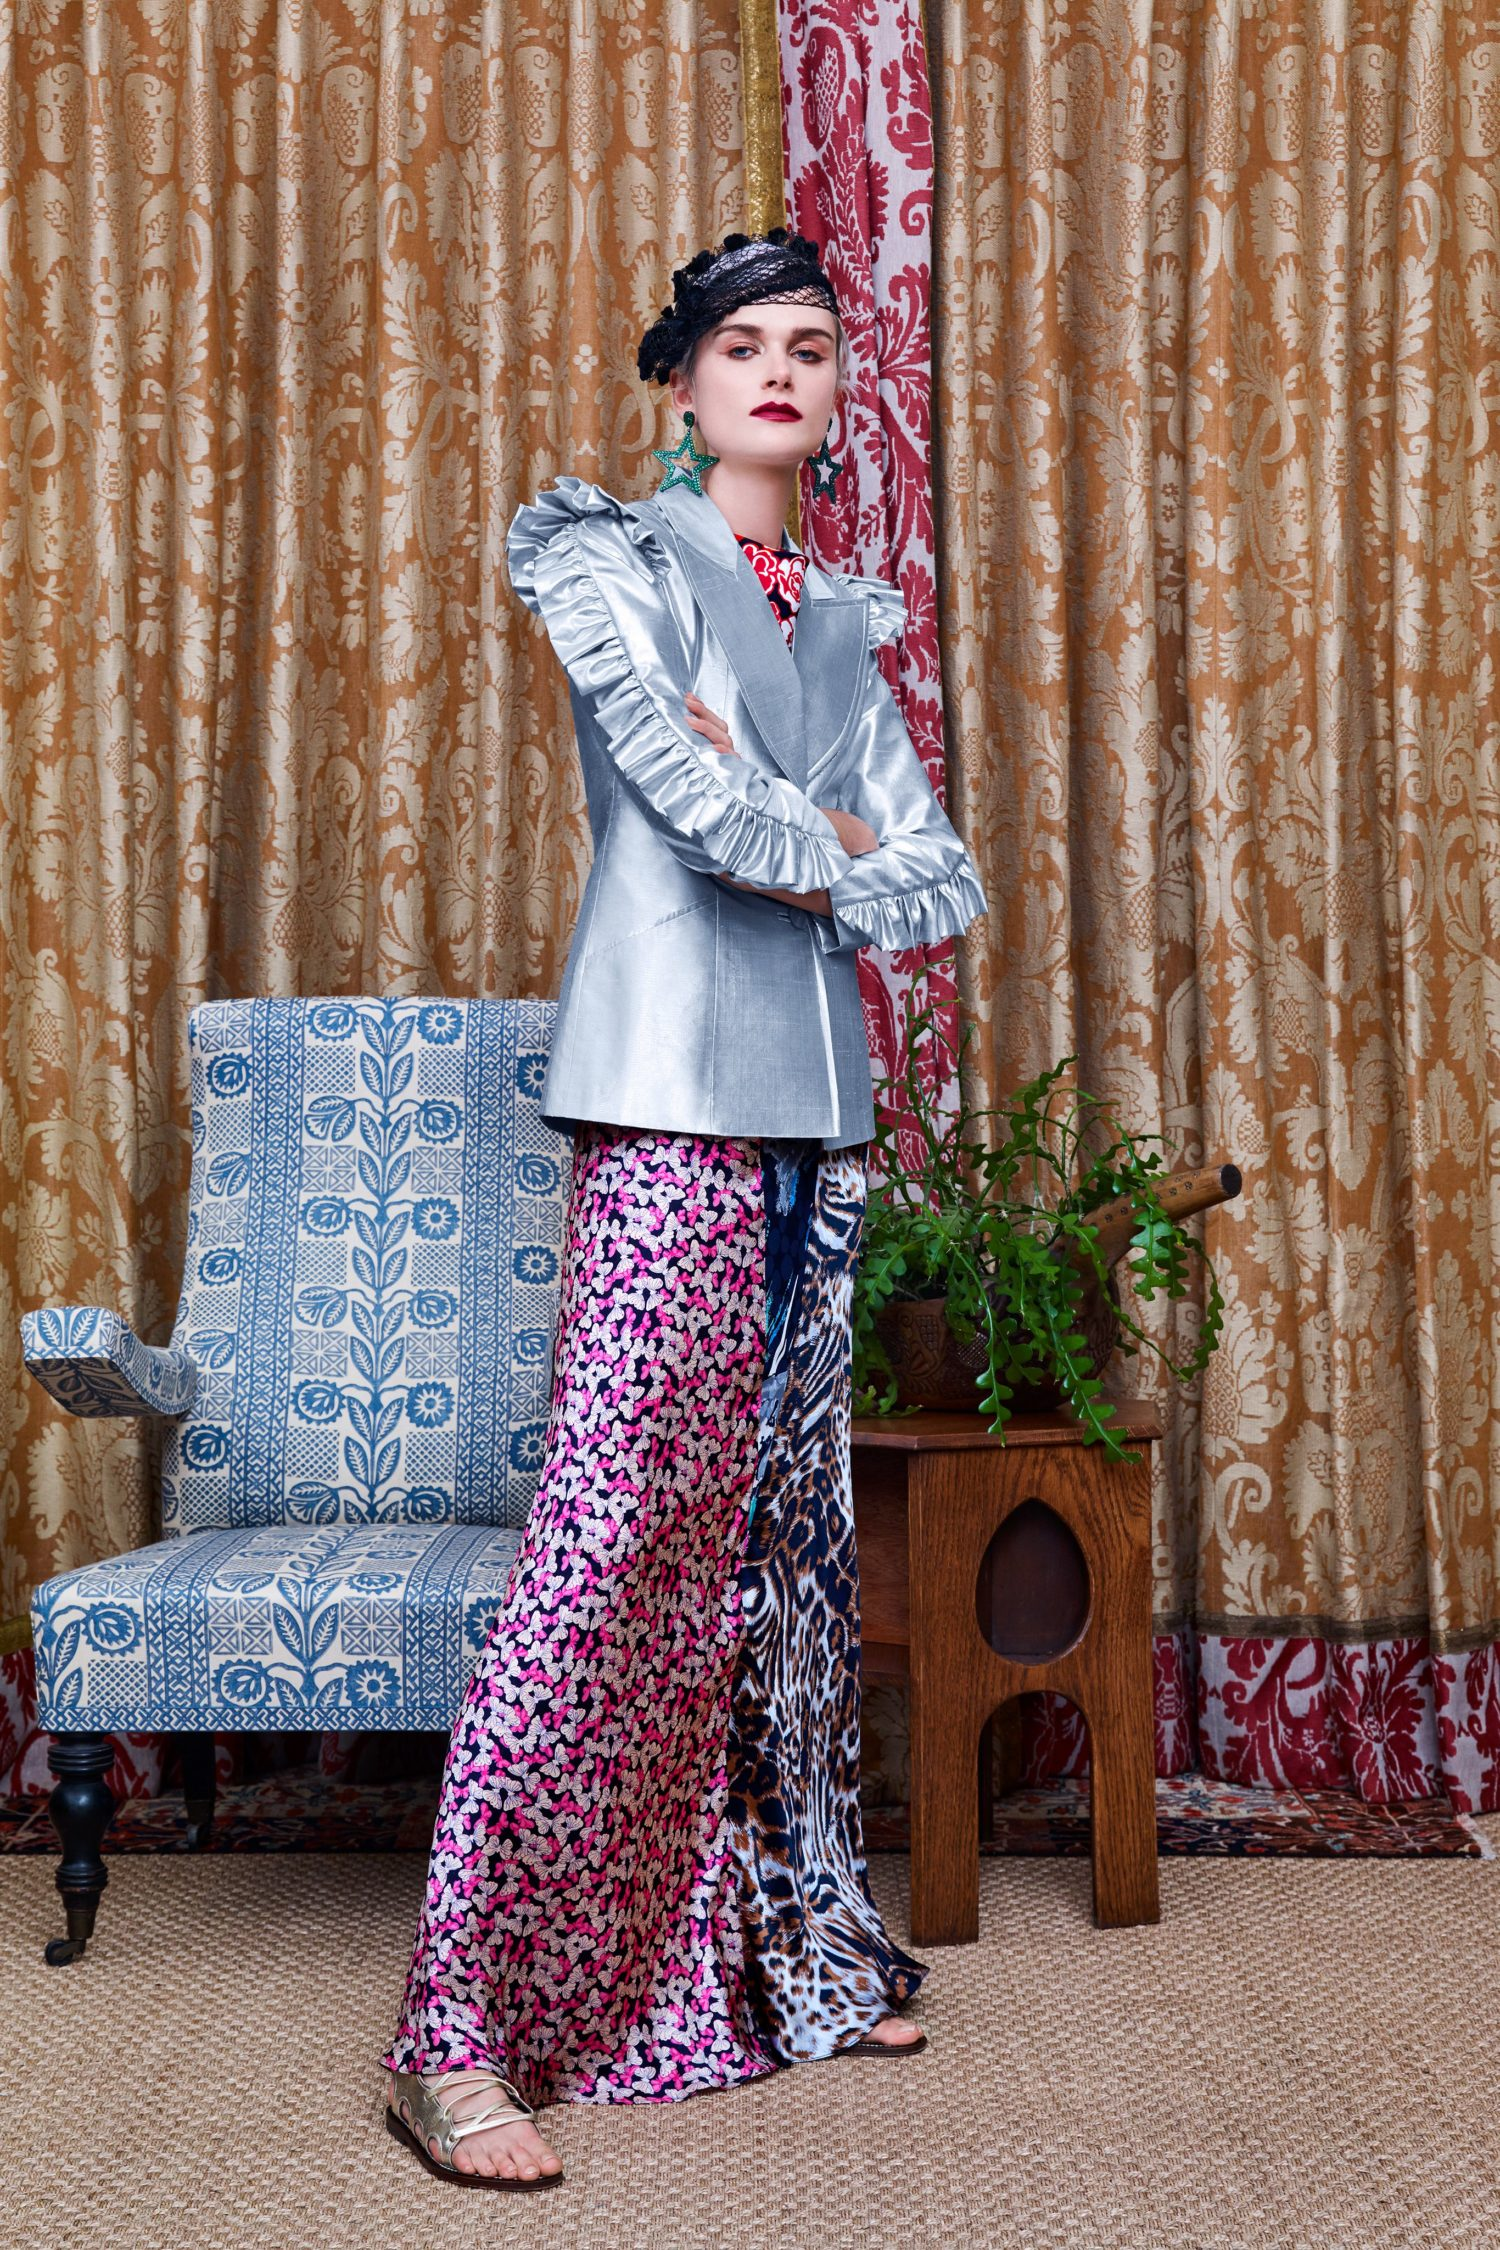 All The Looks From Duro Olowu's Spring/Summer 2019 Collection